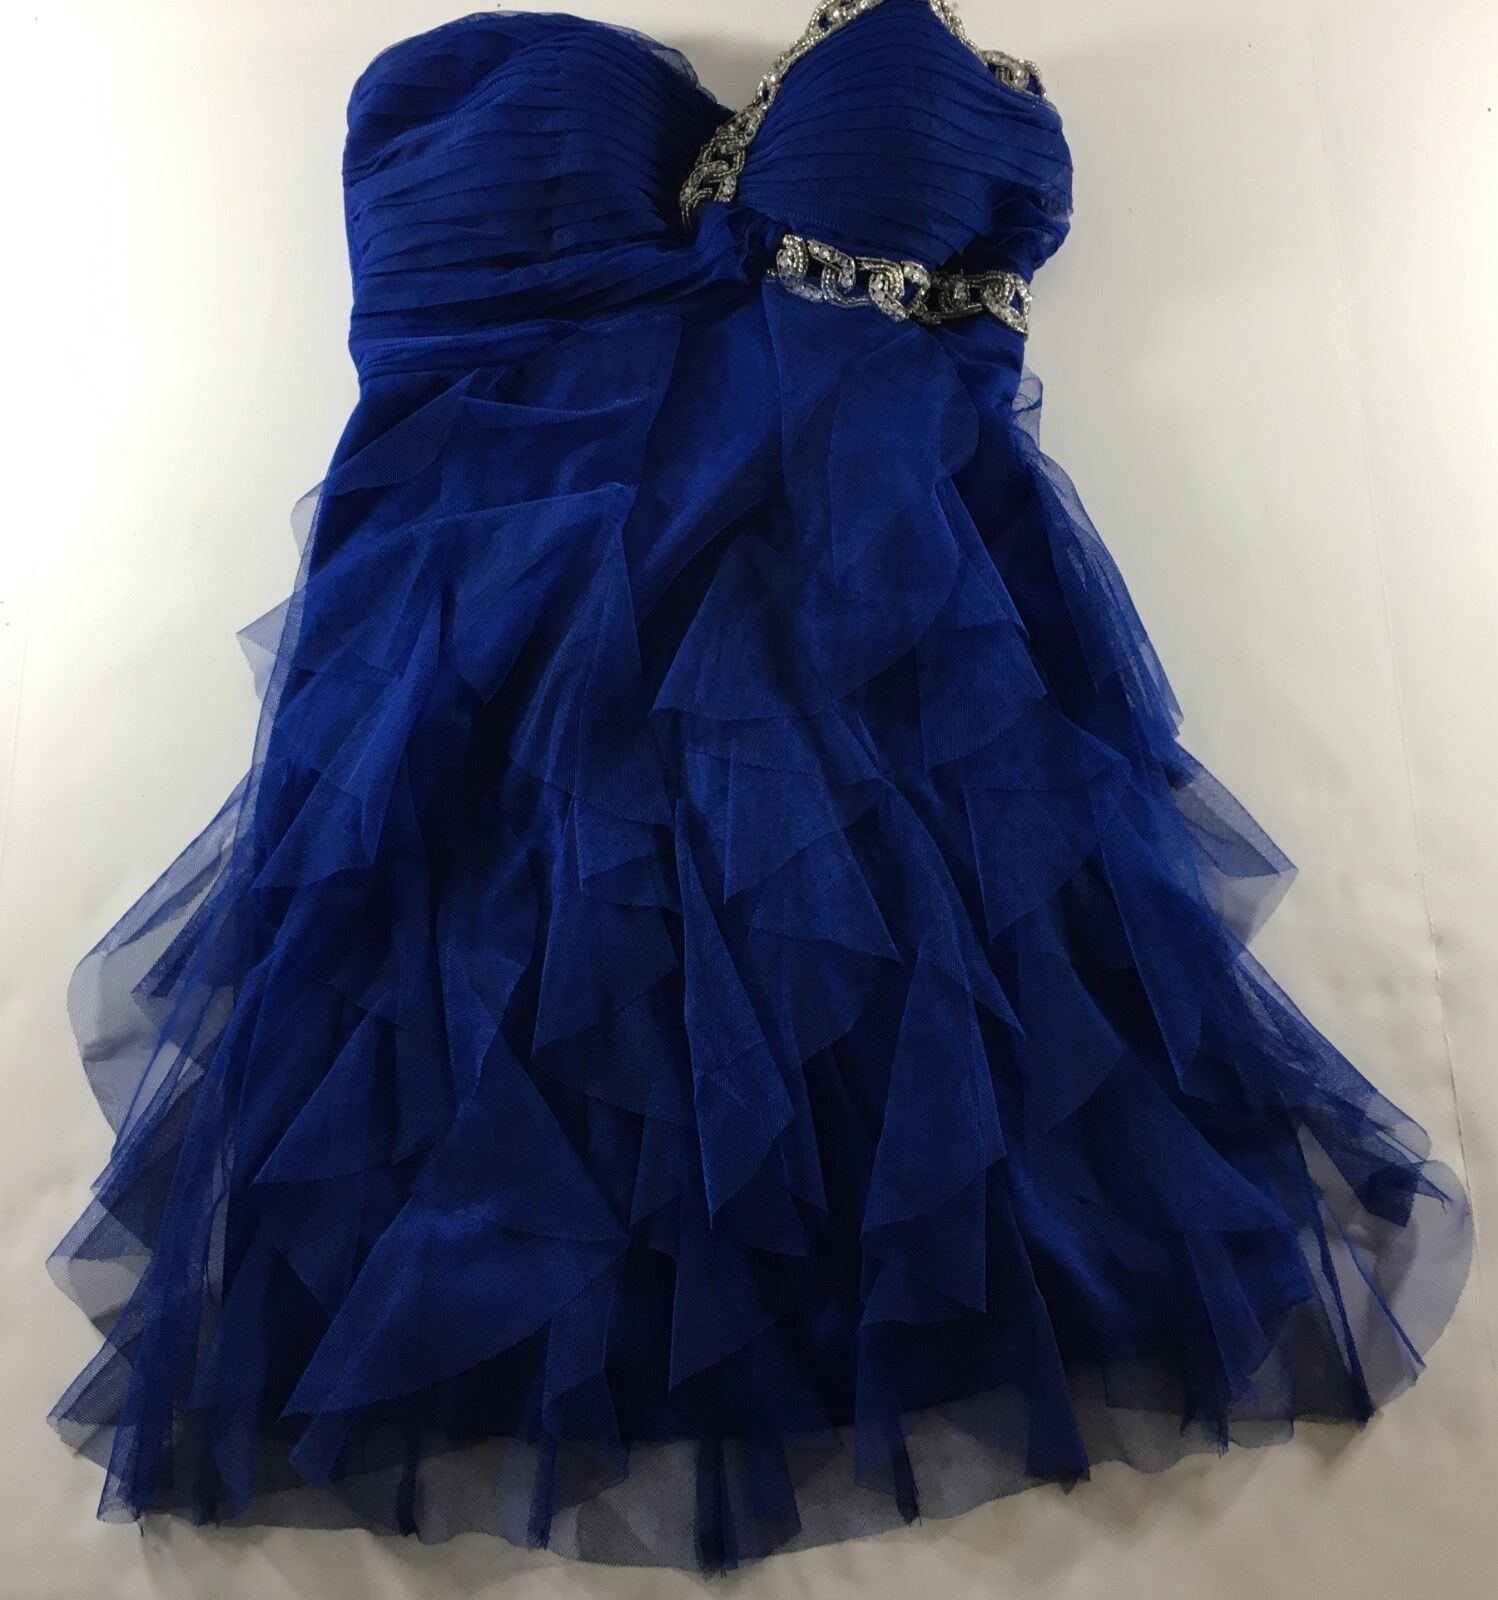 Blondie Nites Dress Junior Size 3 bluee Strapless Ruffles Rhinestones Prom Formal